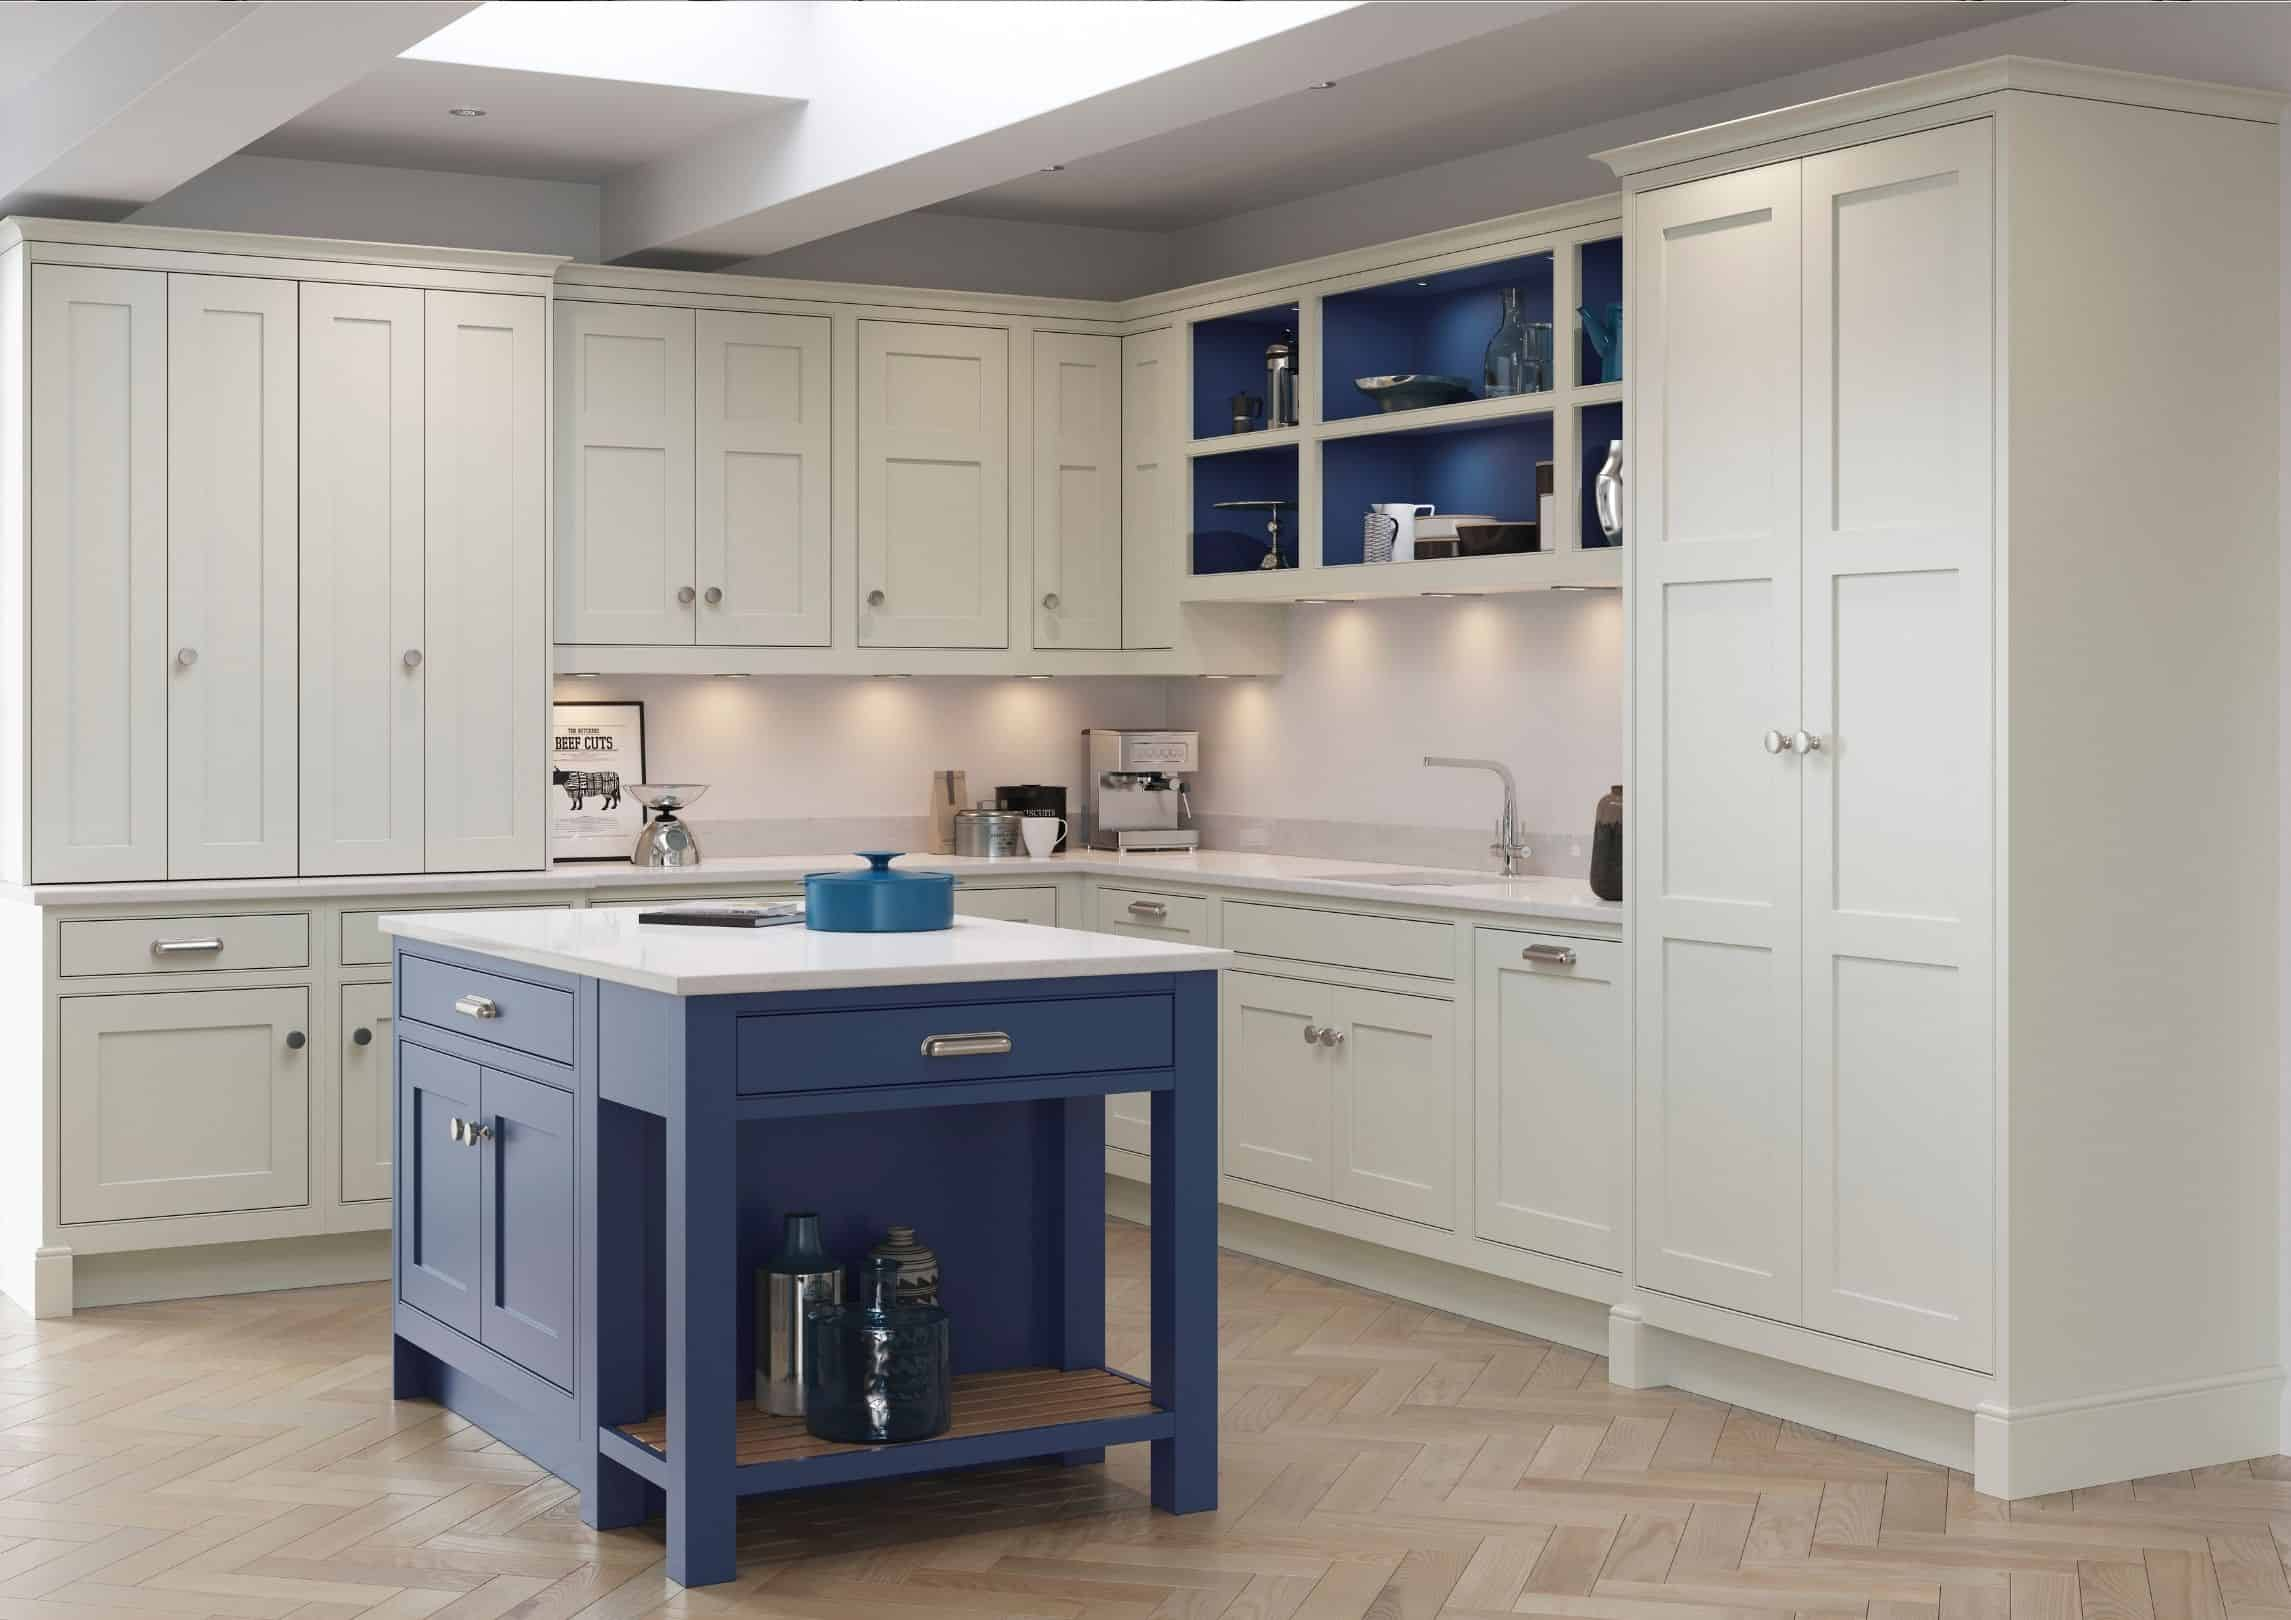 traditional kitchen with blue finish